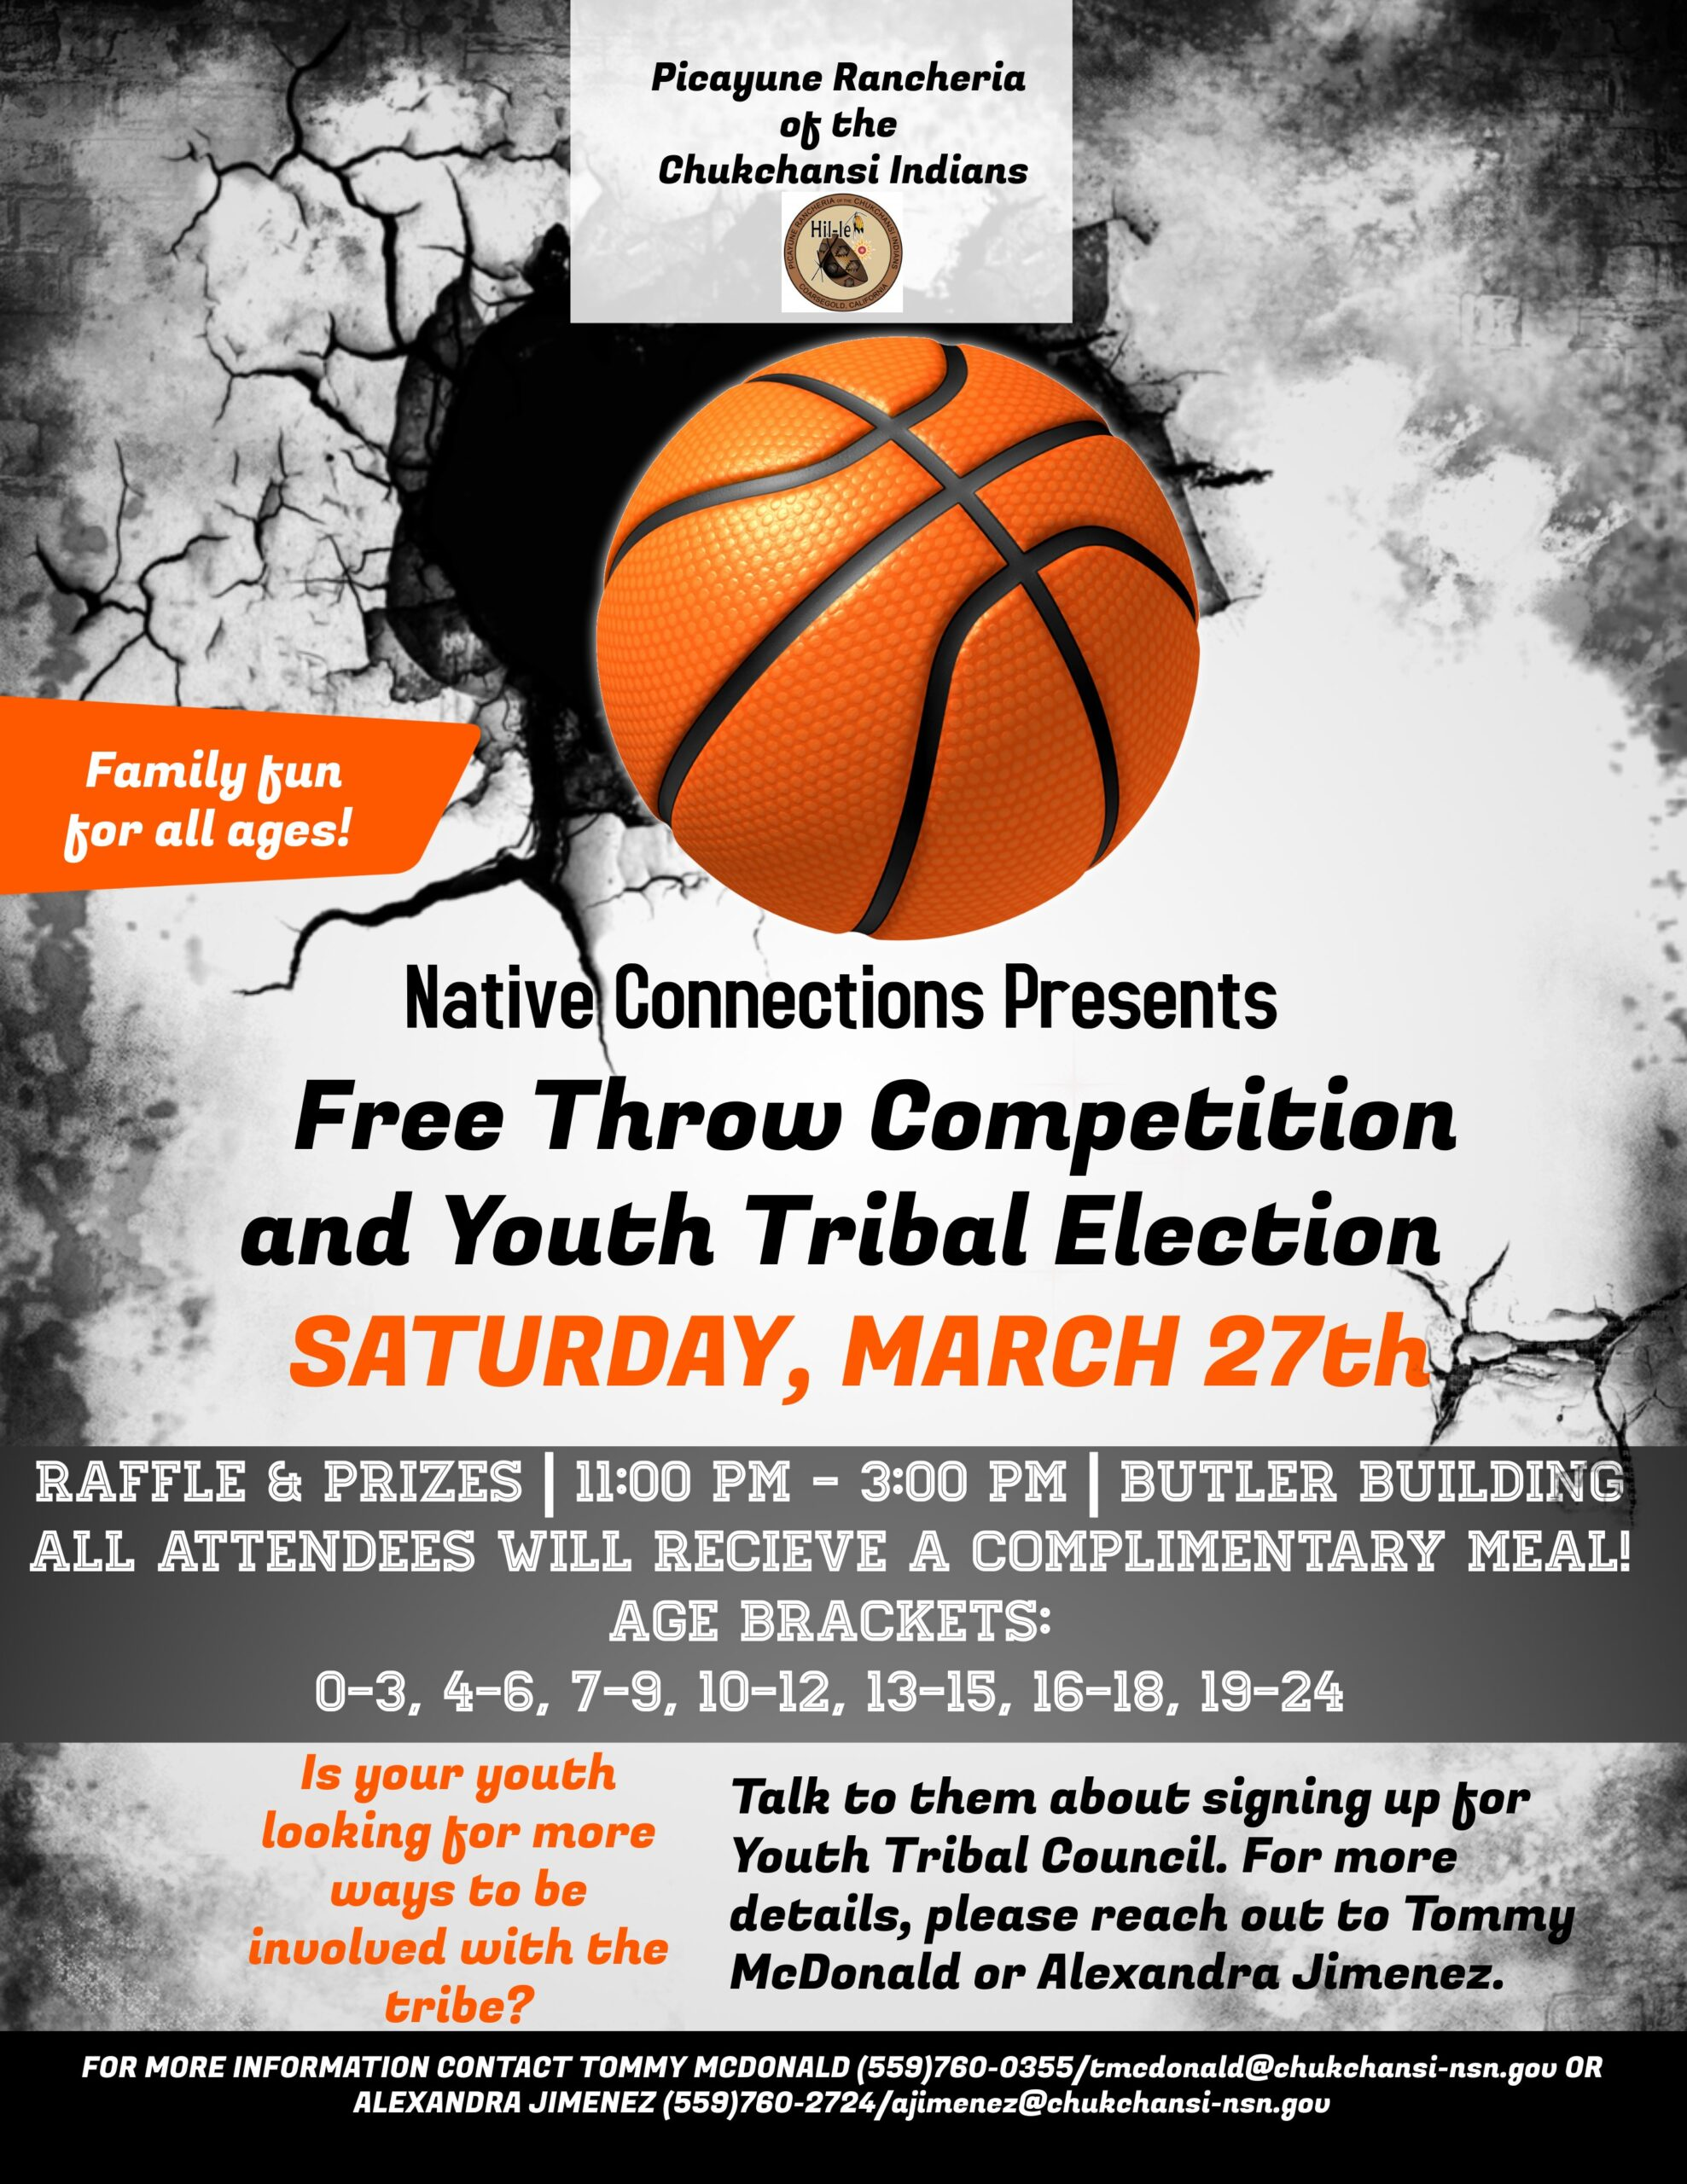 Free Throw Competitition @ Butler Building